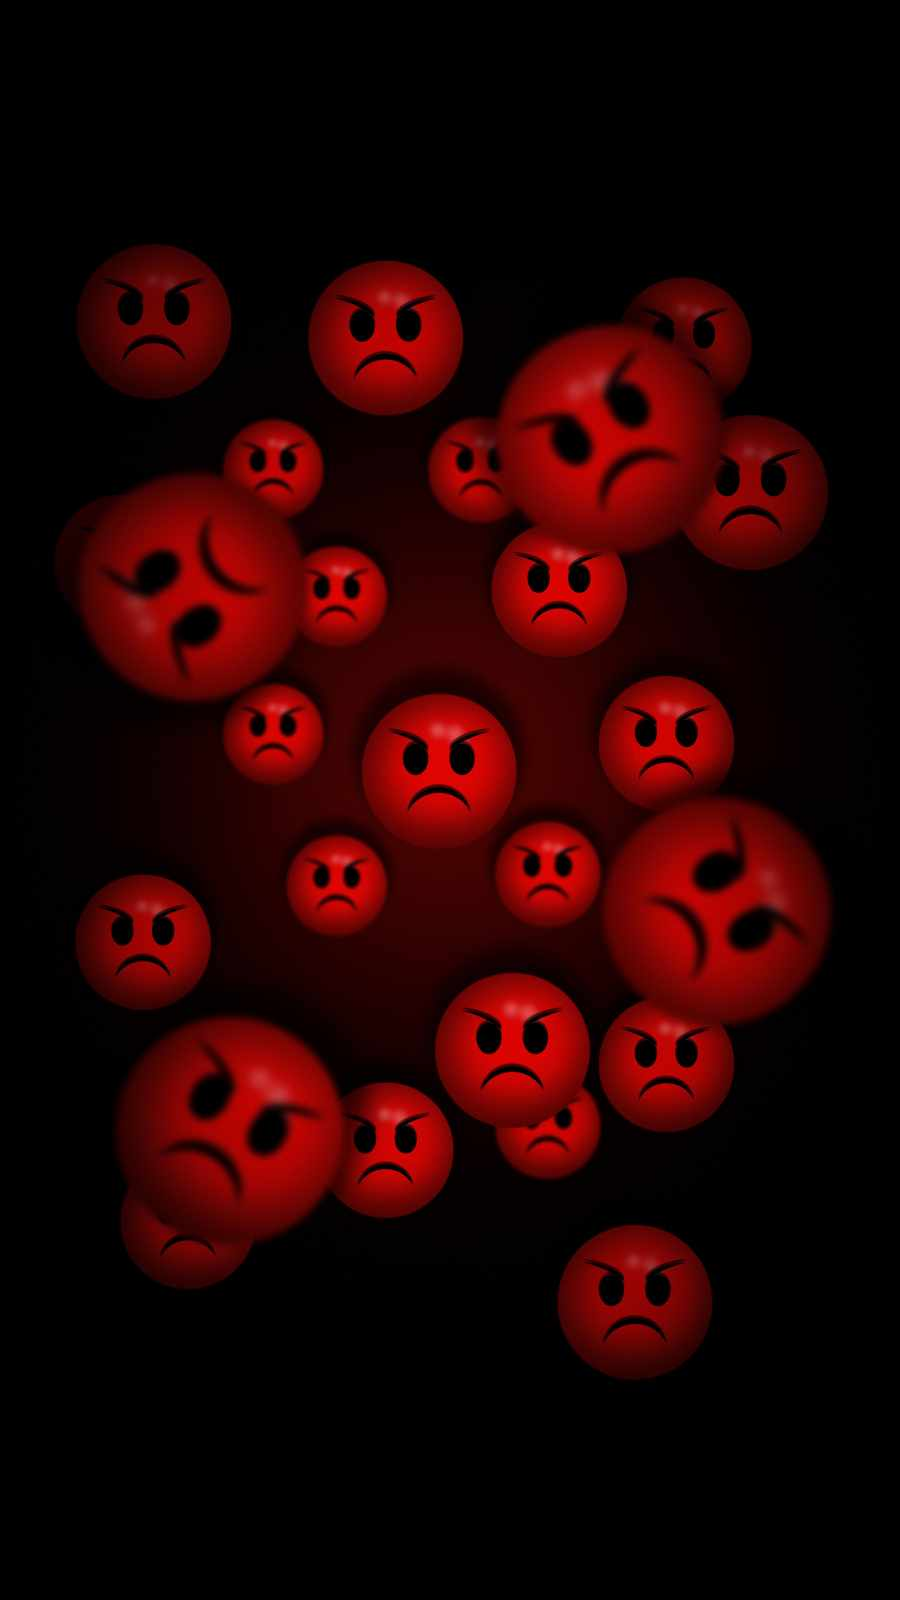 Angry Faces iPhone Wallpaper